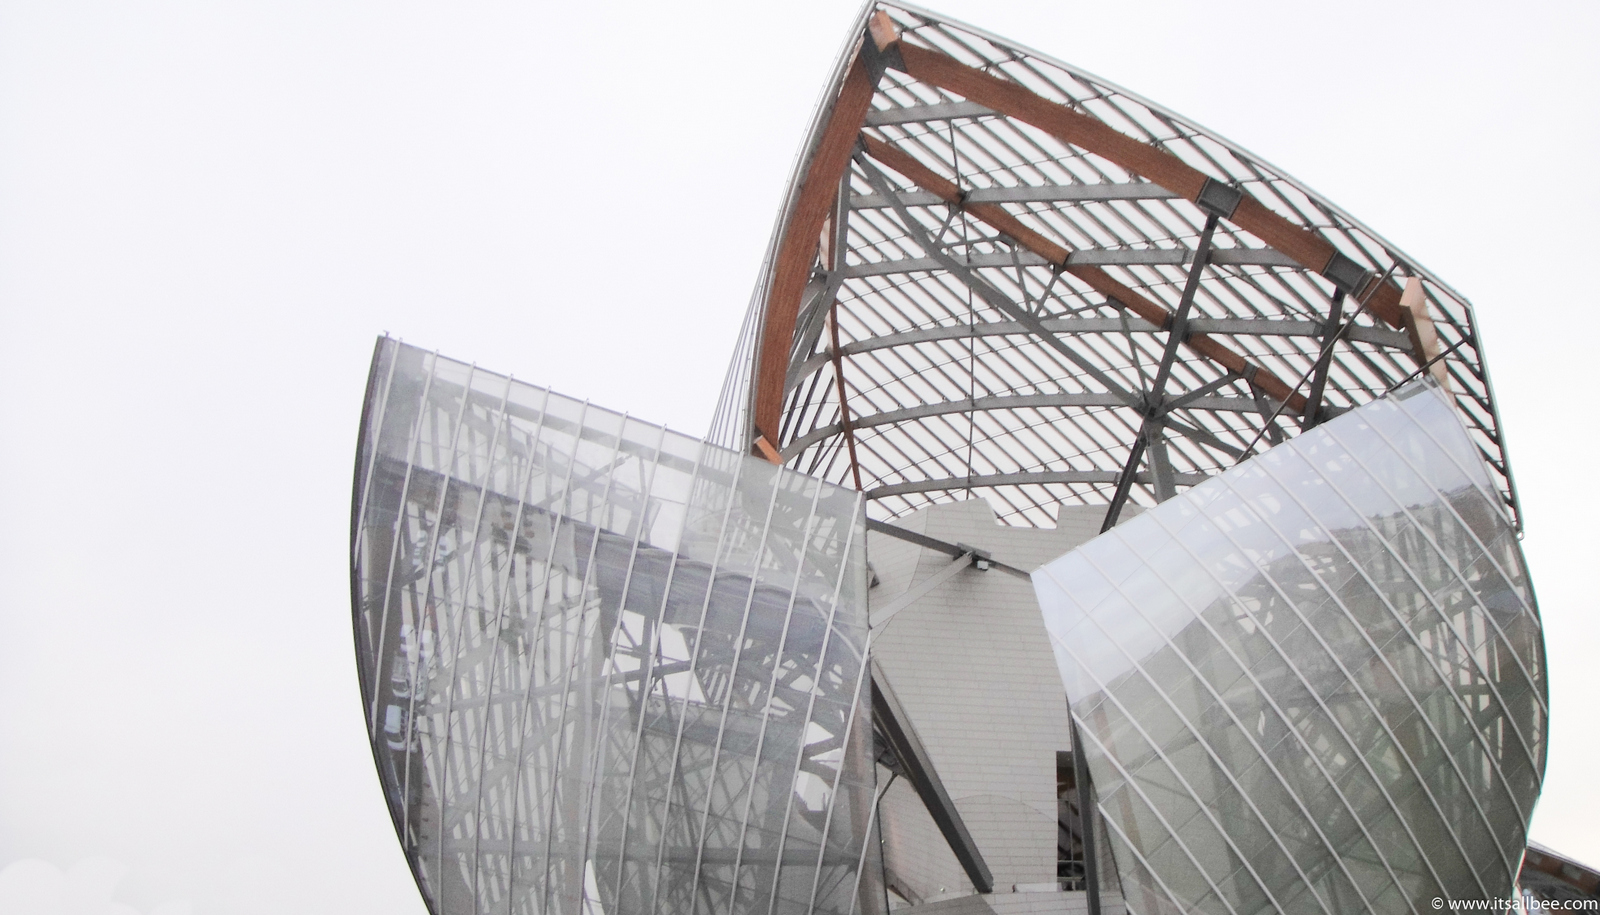 Foundation Louis Vuitton In Paris - fondation louis vuitton frank gehry - Tips on Fondation Louis Vuitton Museum Tickets, opening Hours and Metro directions from Paris.